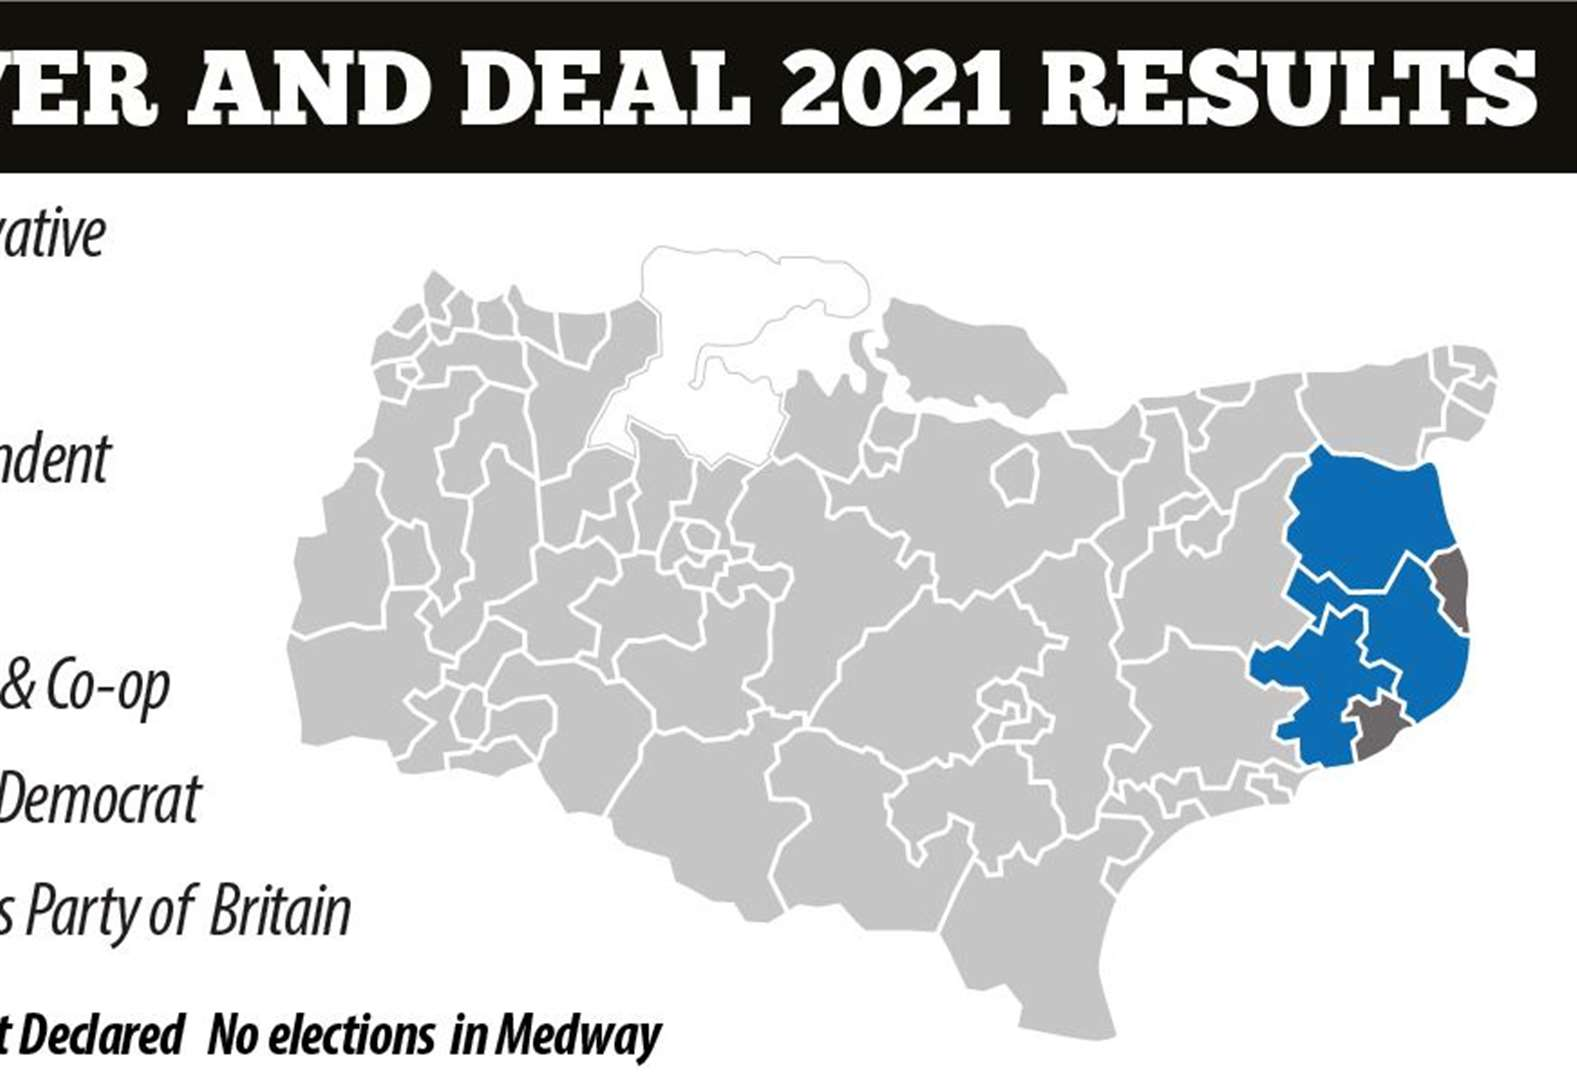 Full results from local election